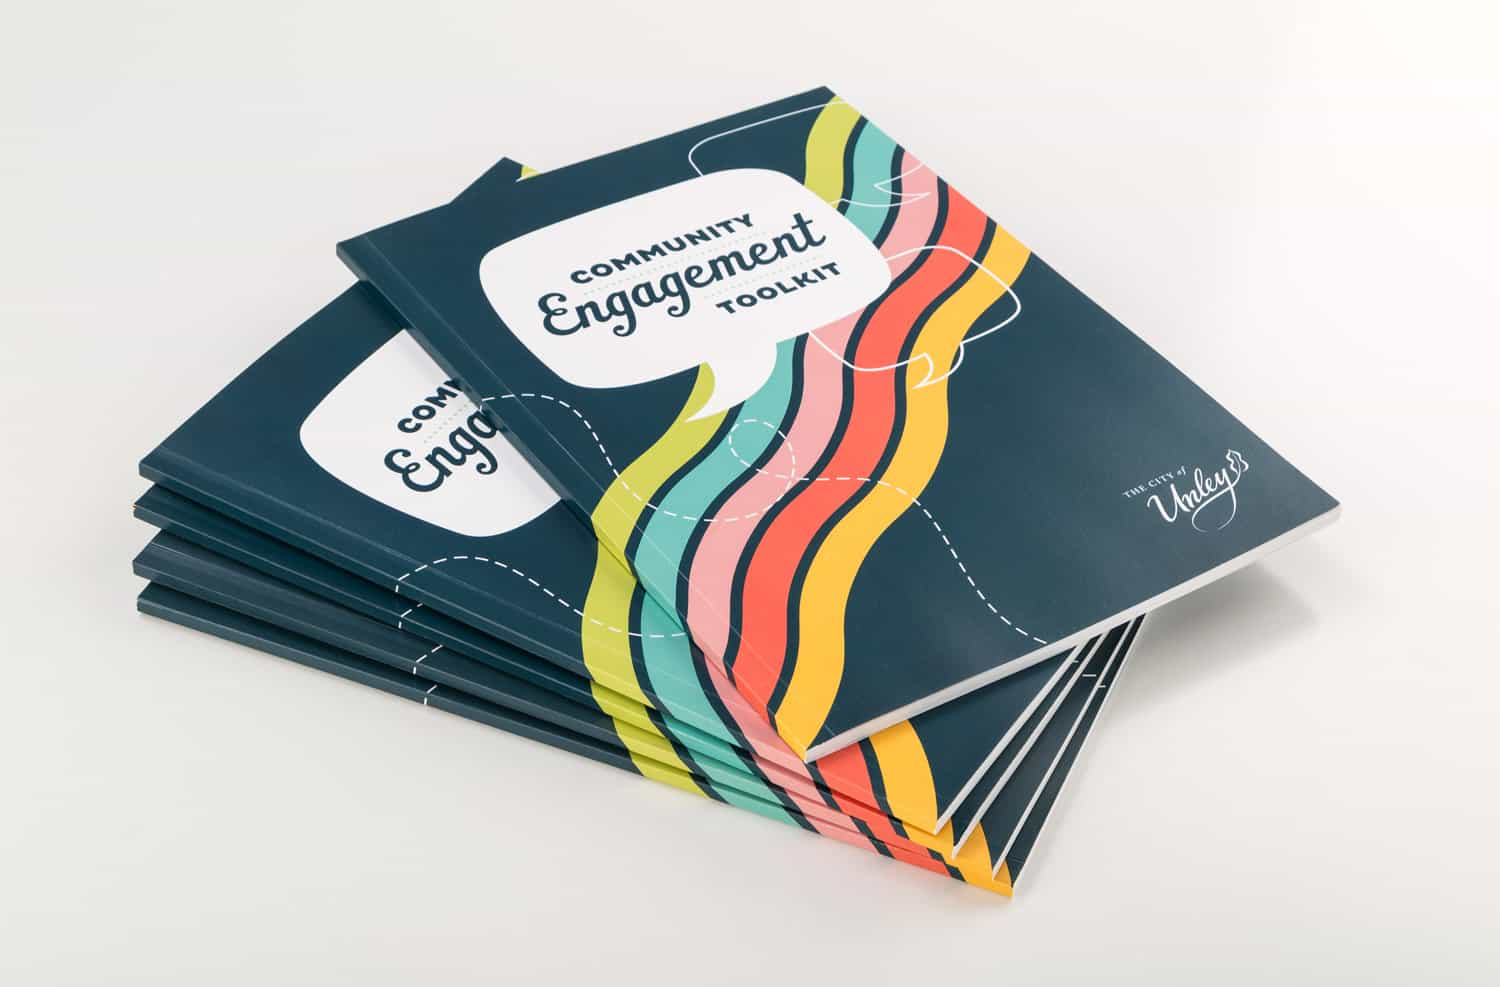 City of Unley, Community Engagement Toolkit publication